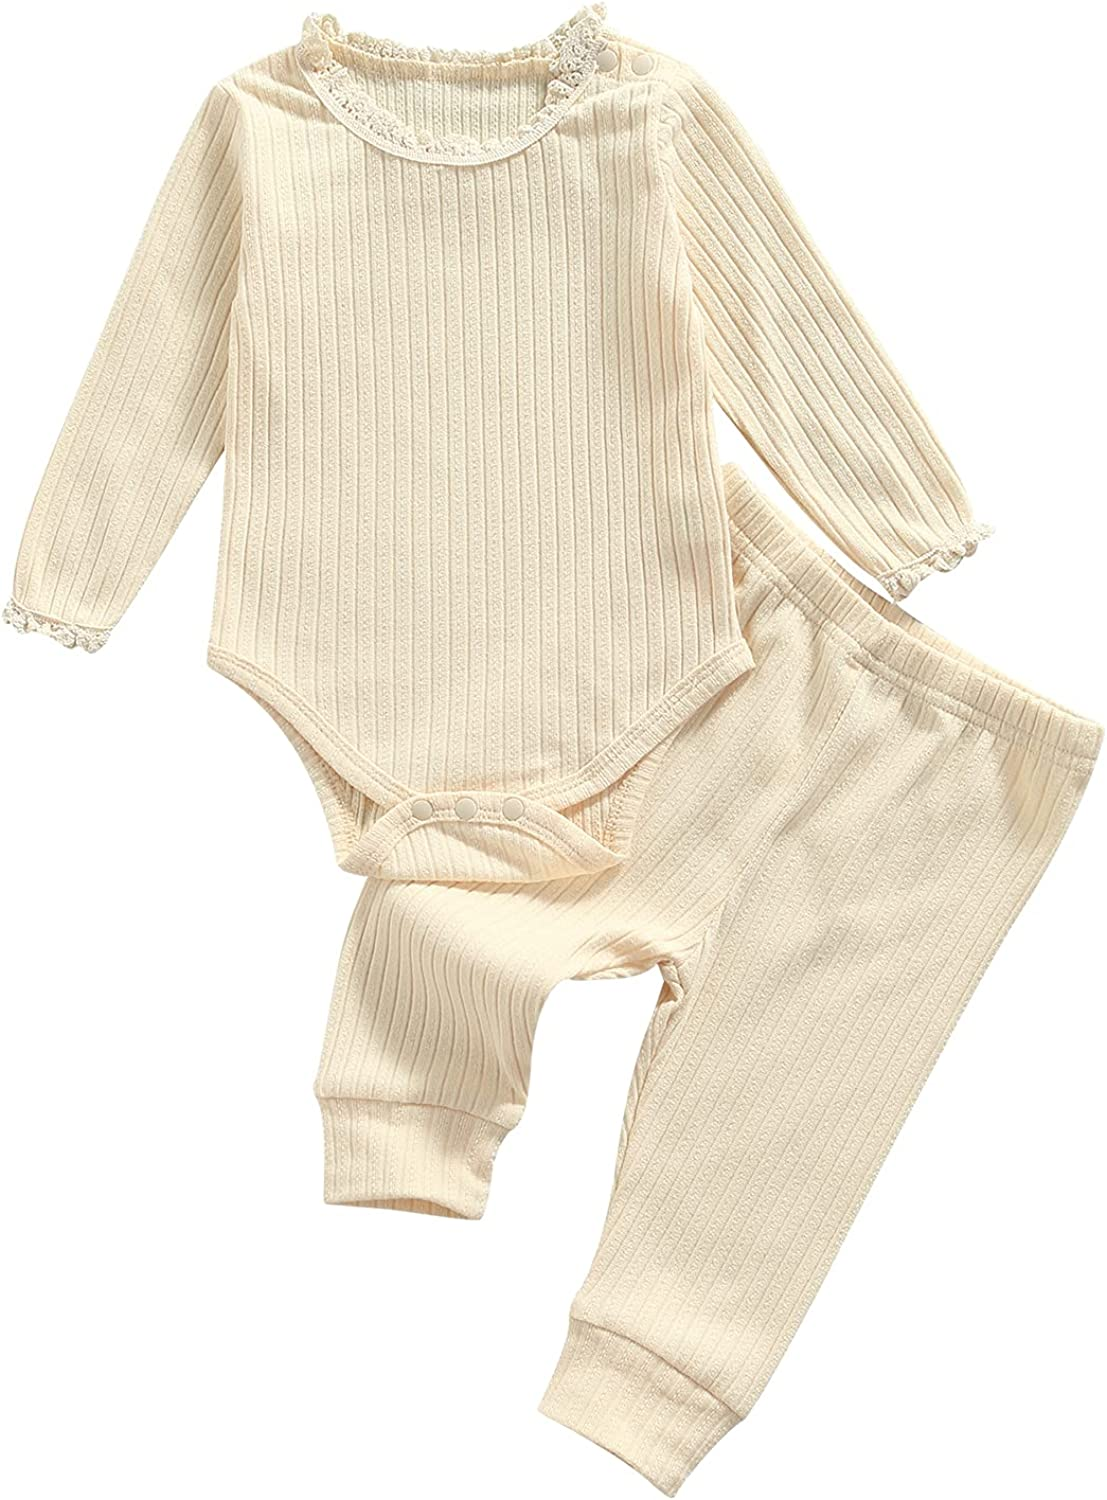 2 Pcs Newborn Baby Girls Clothes Set Lace Trim O-Neck Long Sleeve Romper+Solid Color Trousers